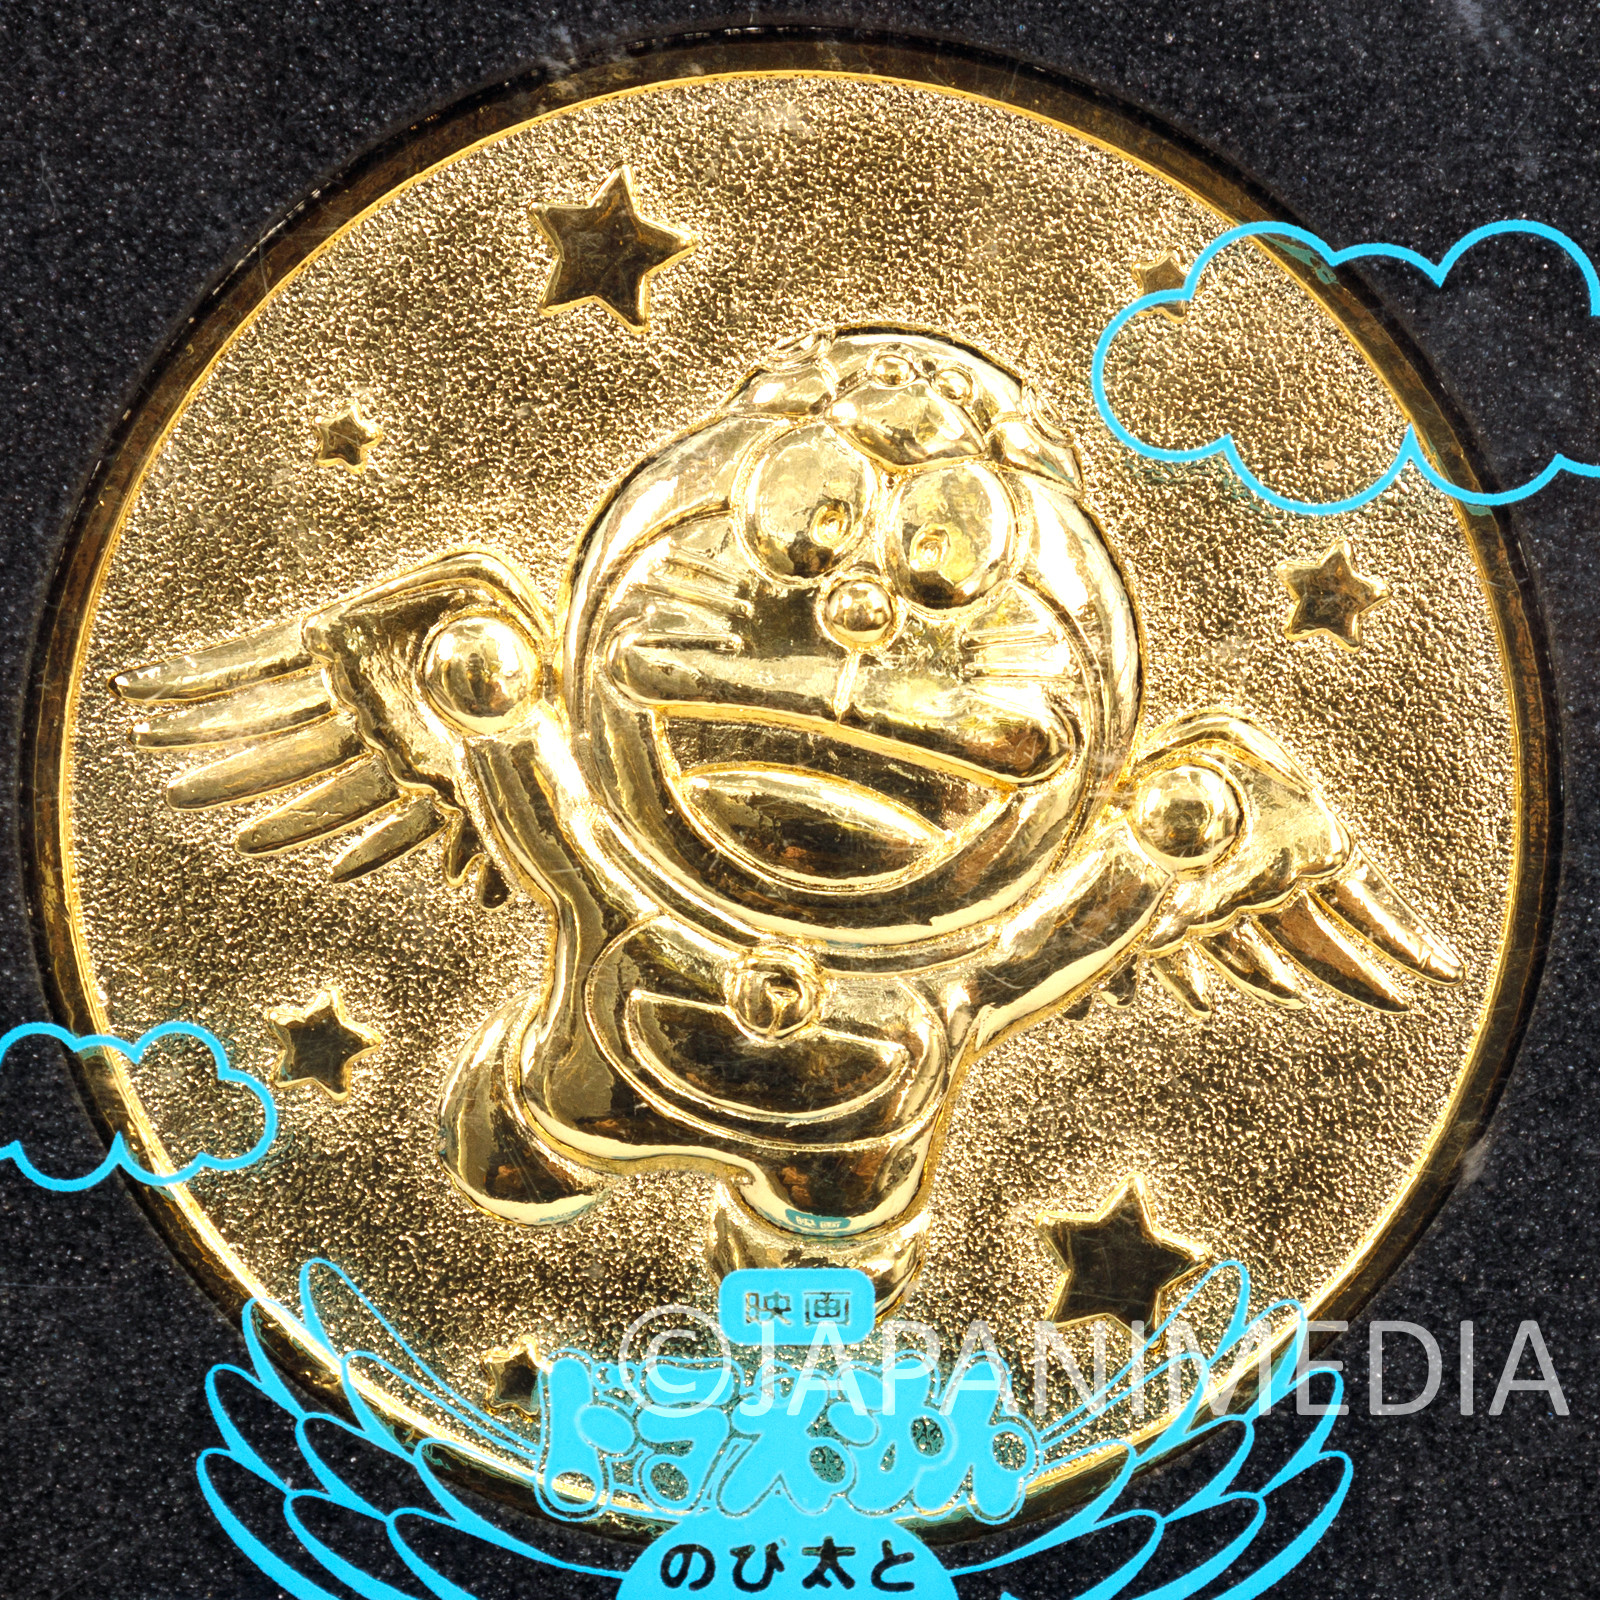 Doraemon: Nobita and the Winged Braves Movie 2001 Memorial Medal JAPAN